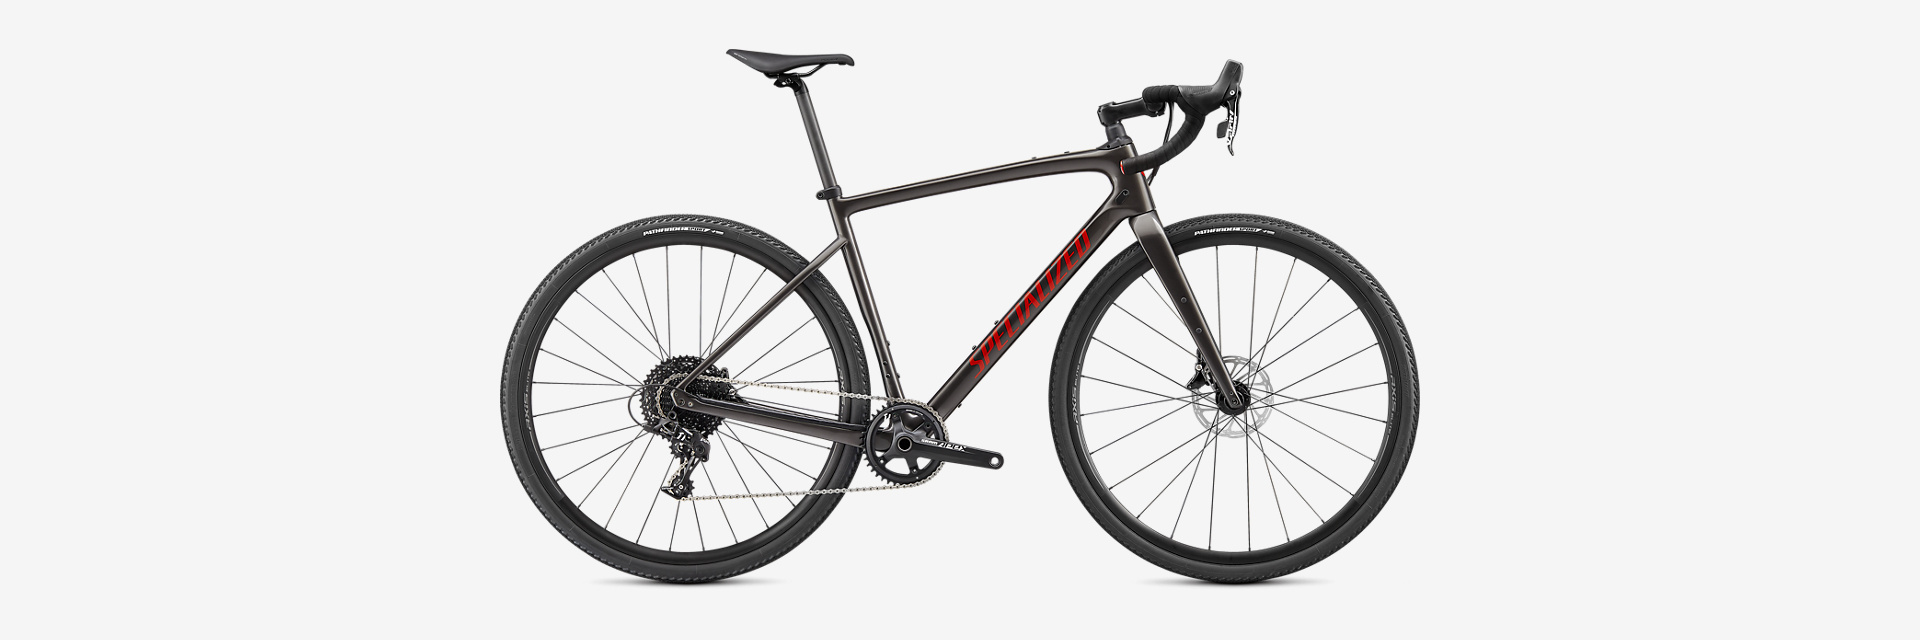 Specialized Diverge Carbon, Smoke/Red 58